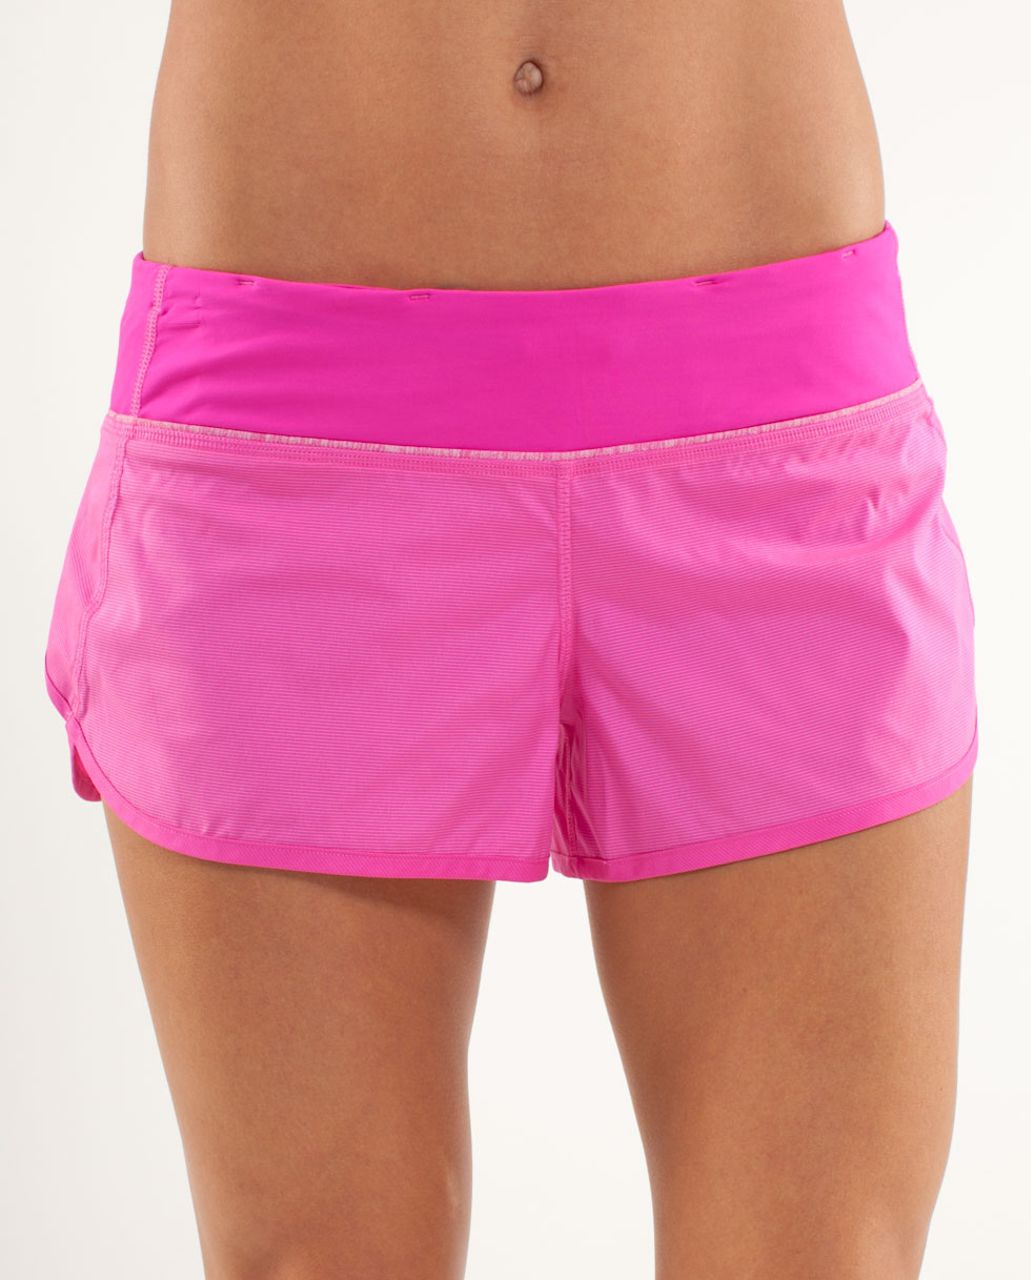 Lululemon Run:  Speed Short - Paris Pink White Microstripe /  Paris Pink